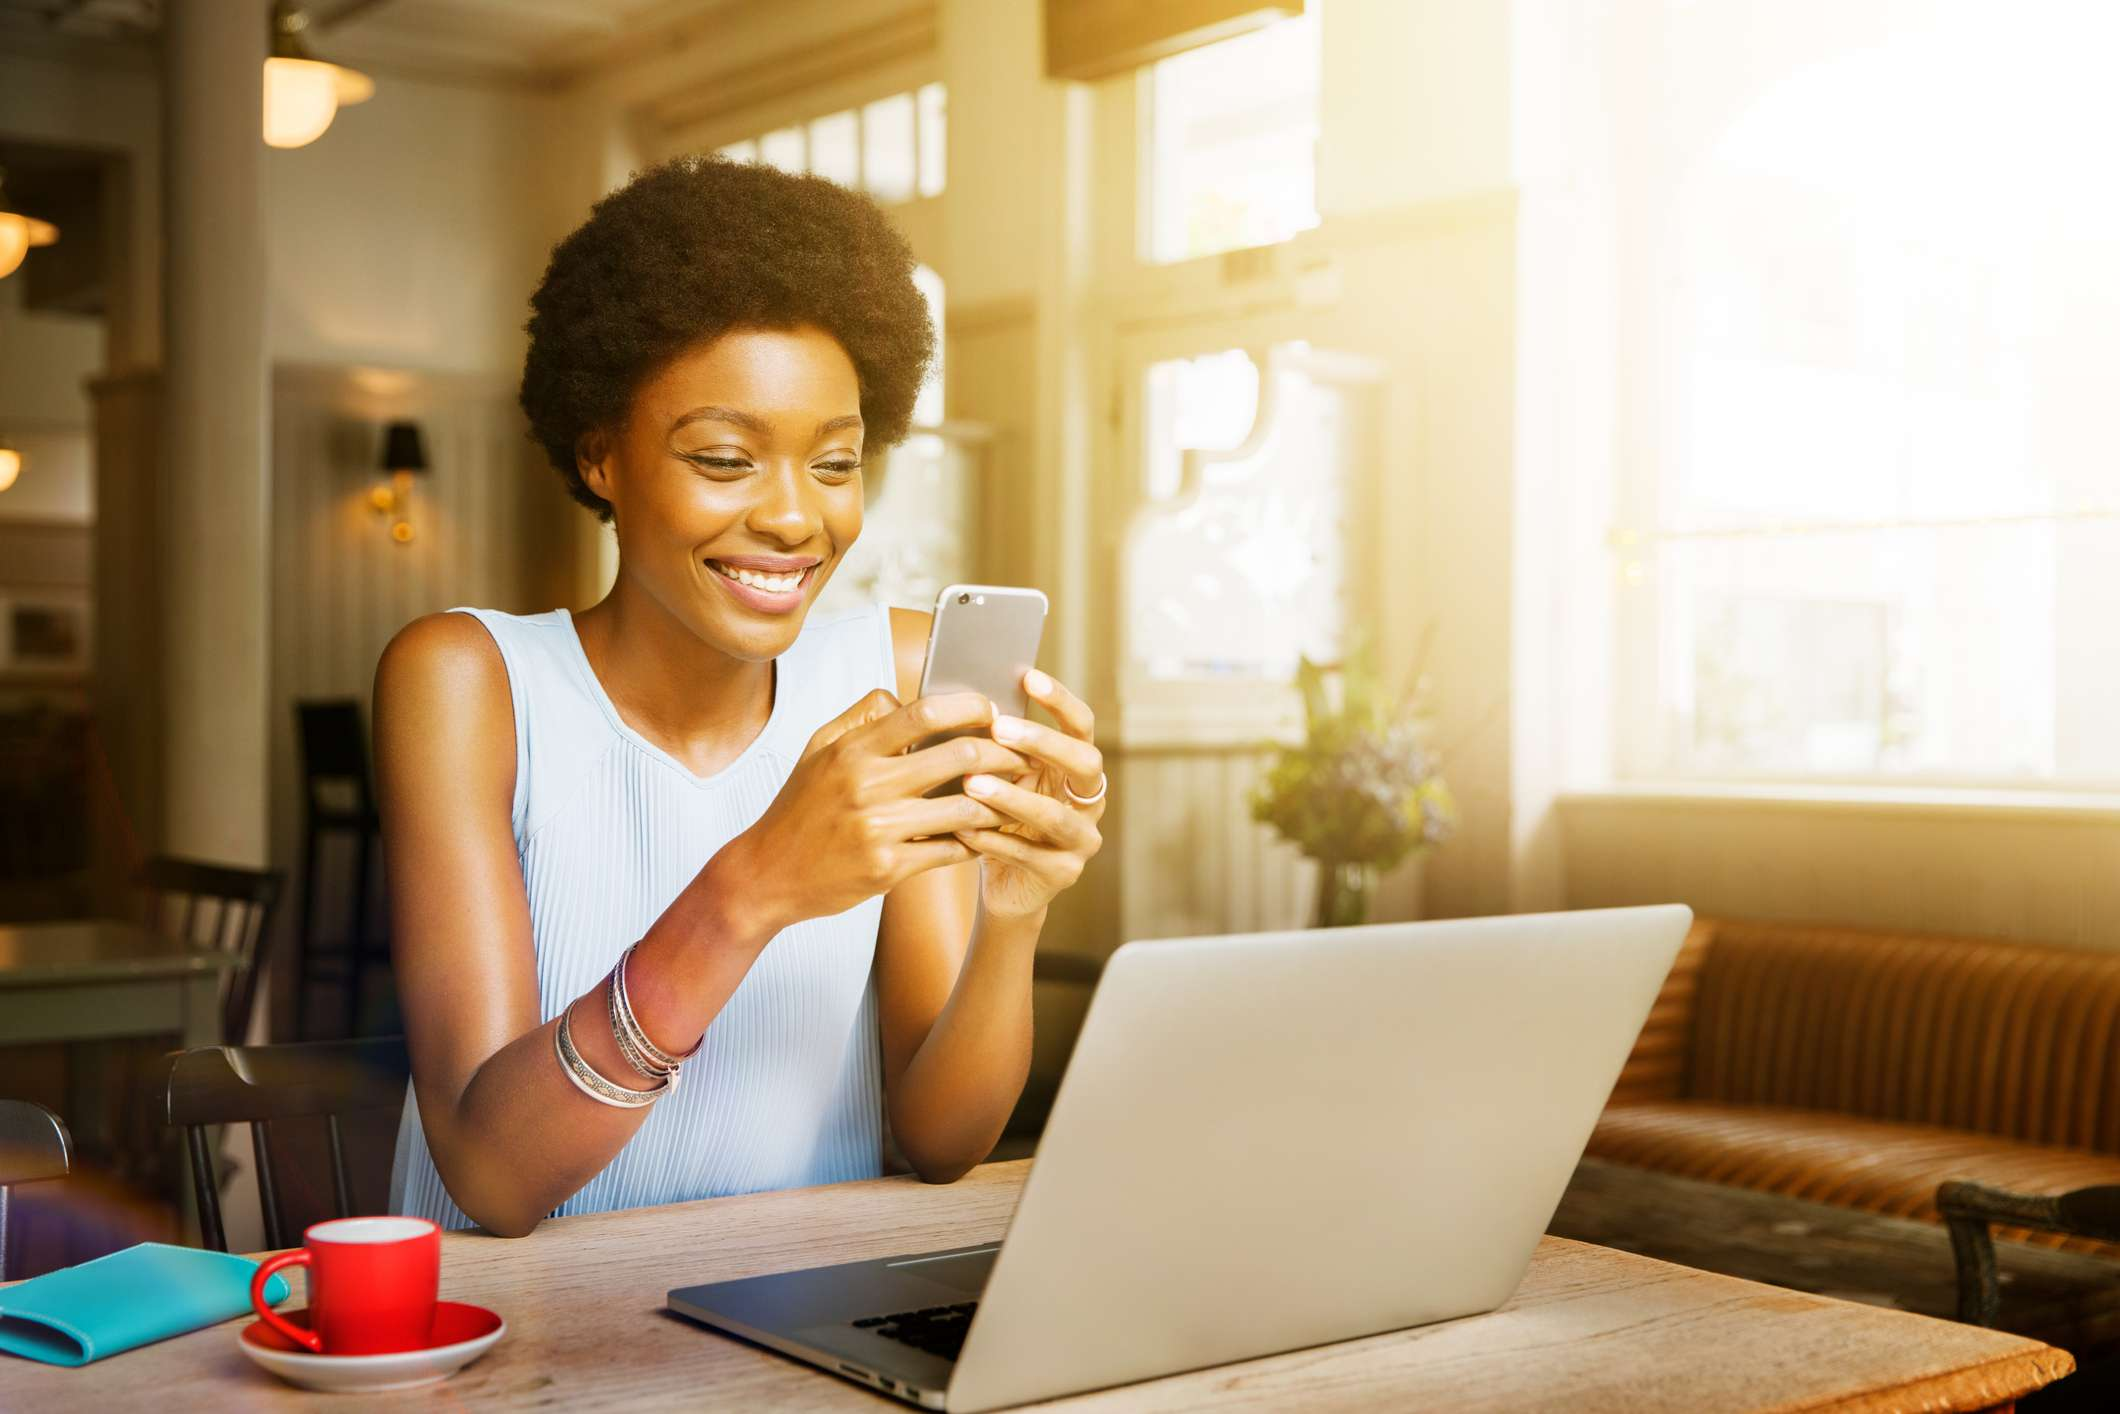 Woman uses smartphone at cafe